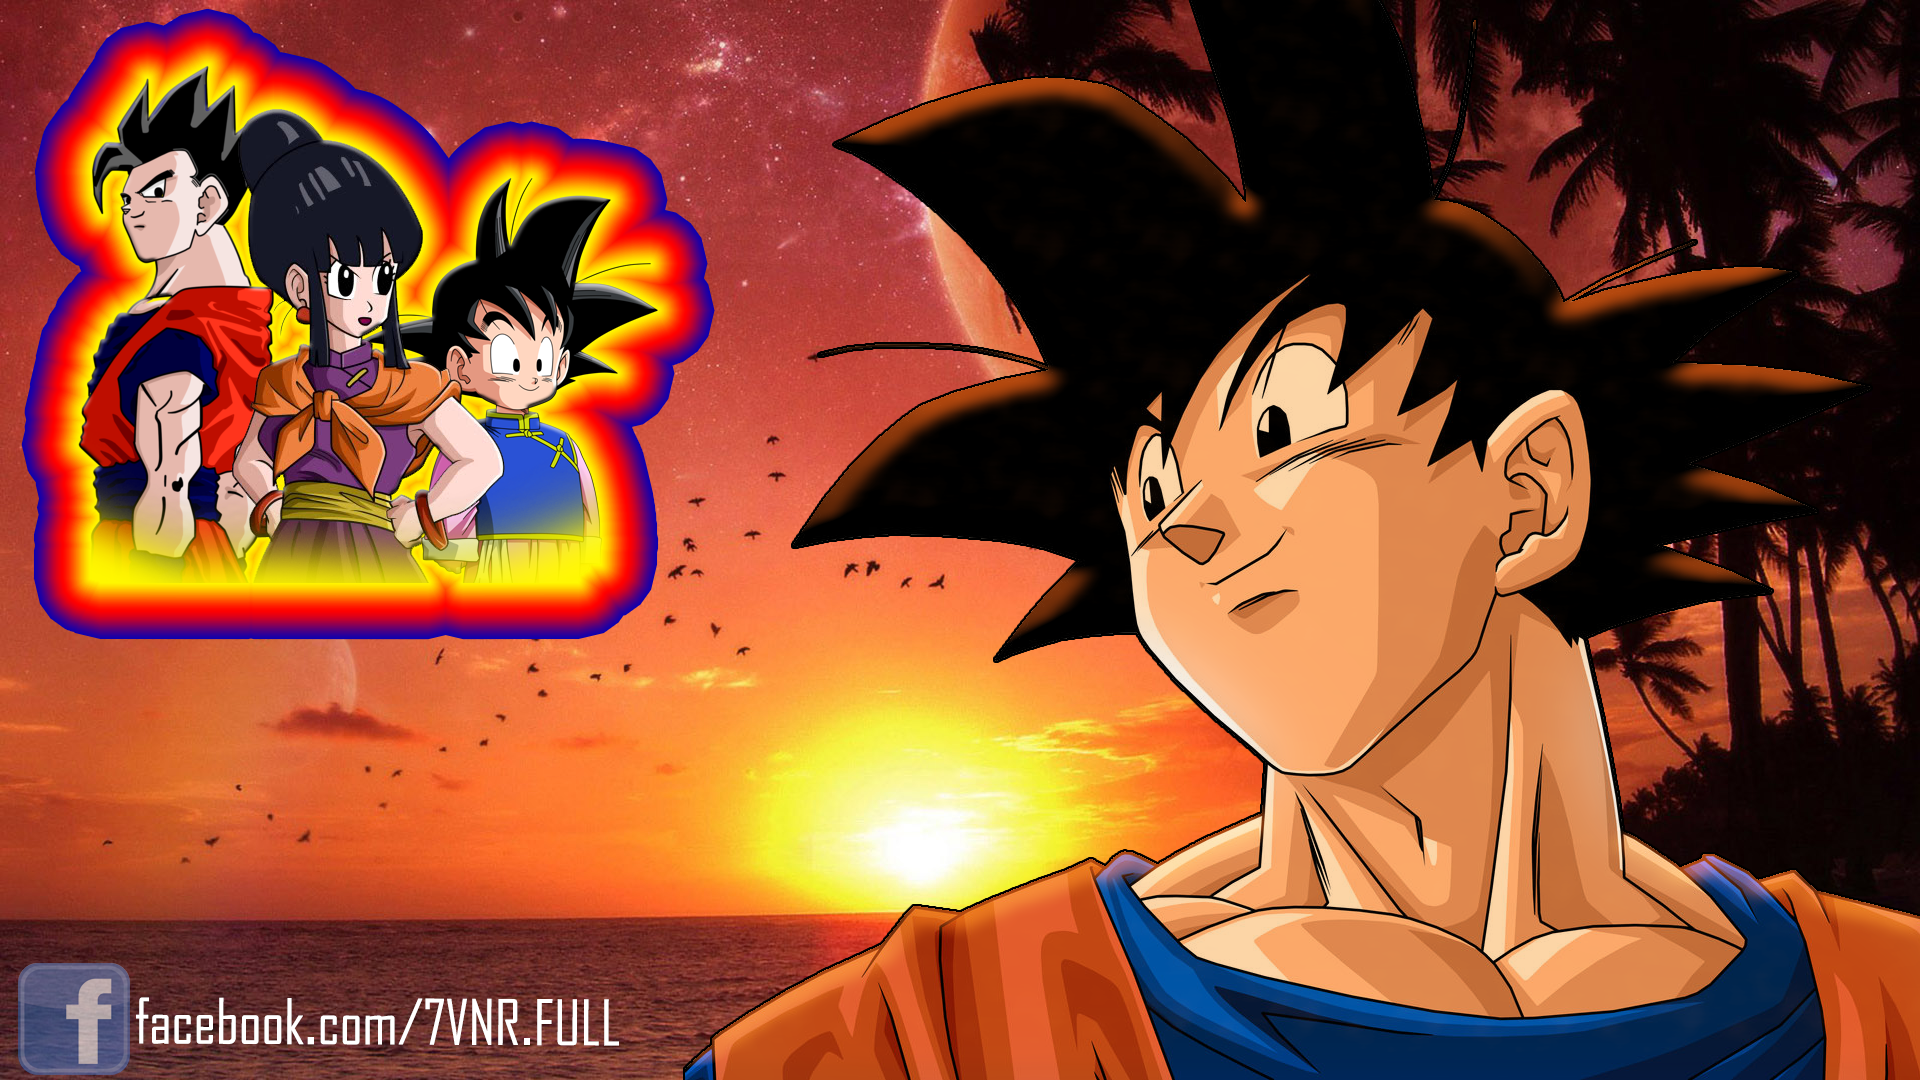 Goku Chichi Gohan and Goten   The family by Pi Eyz 1920x1080